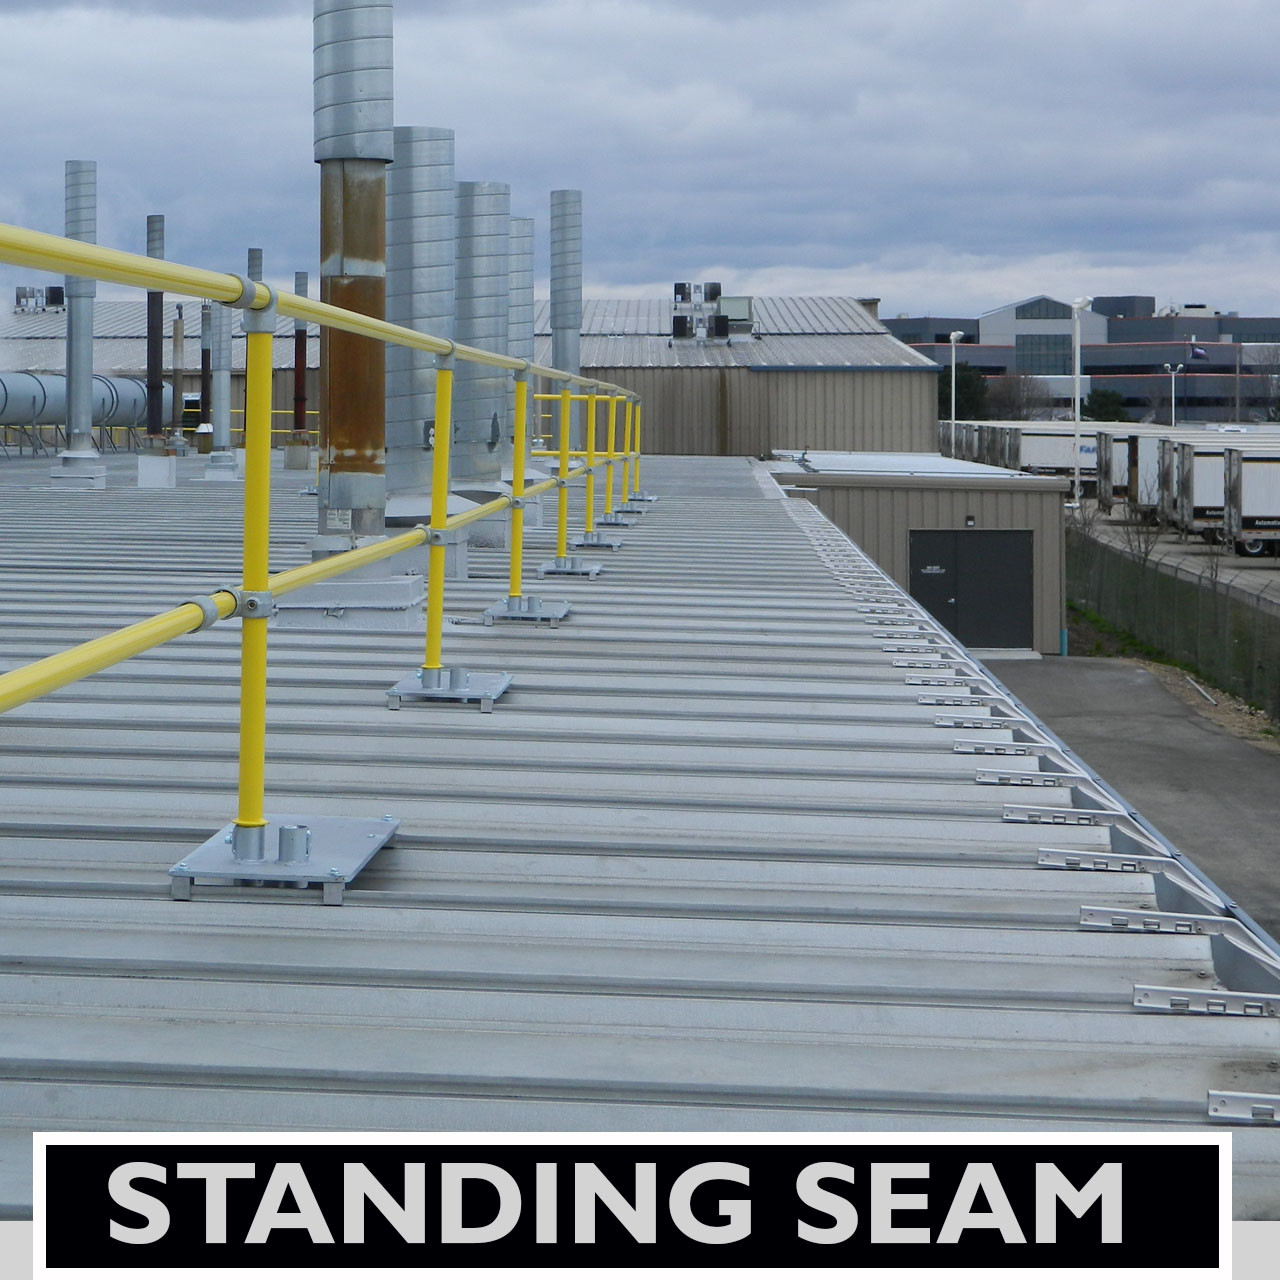 ACCU-FIT GUARDRAIL FOR STANDING SEAM METAL DECKS - Safety